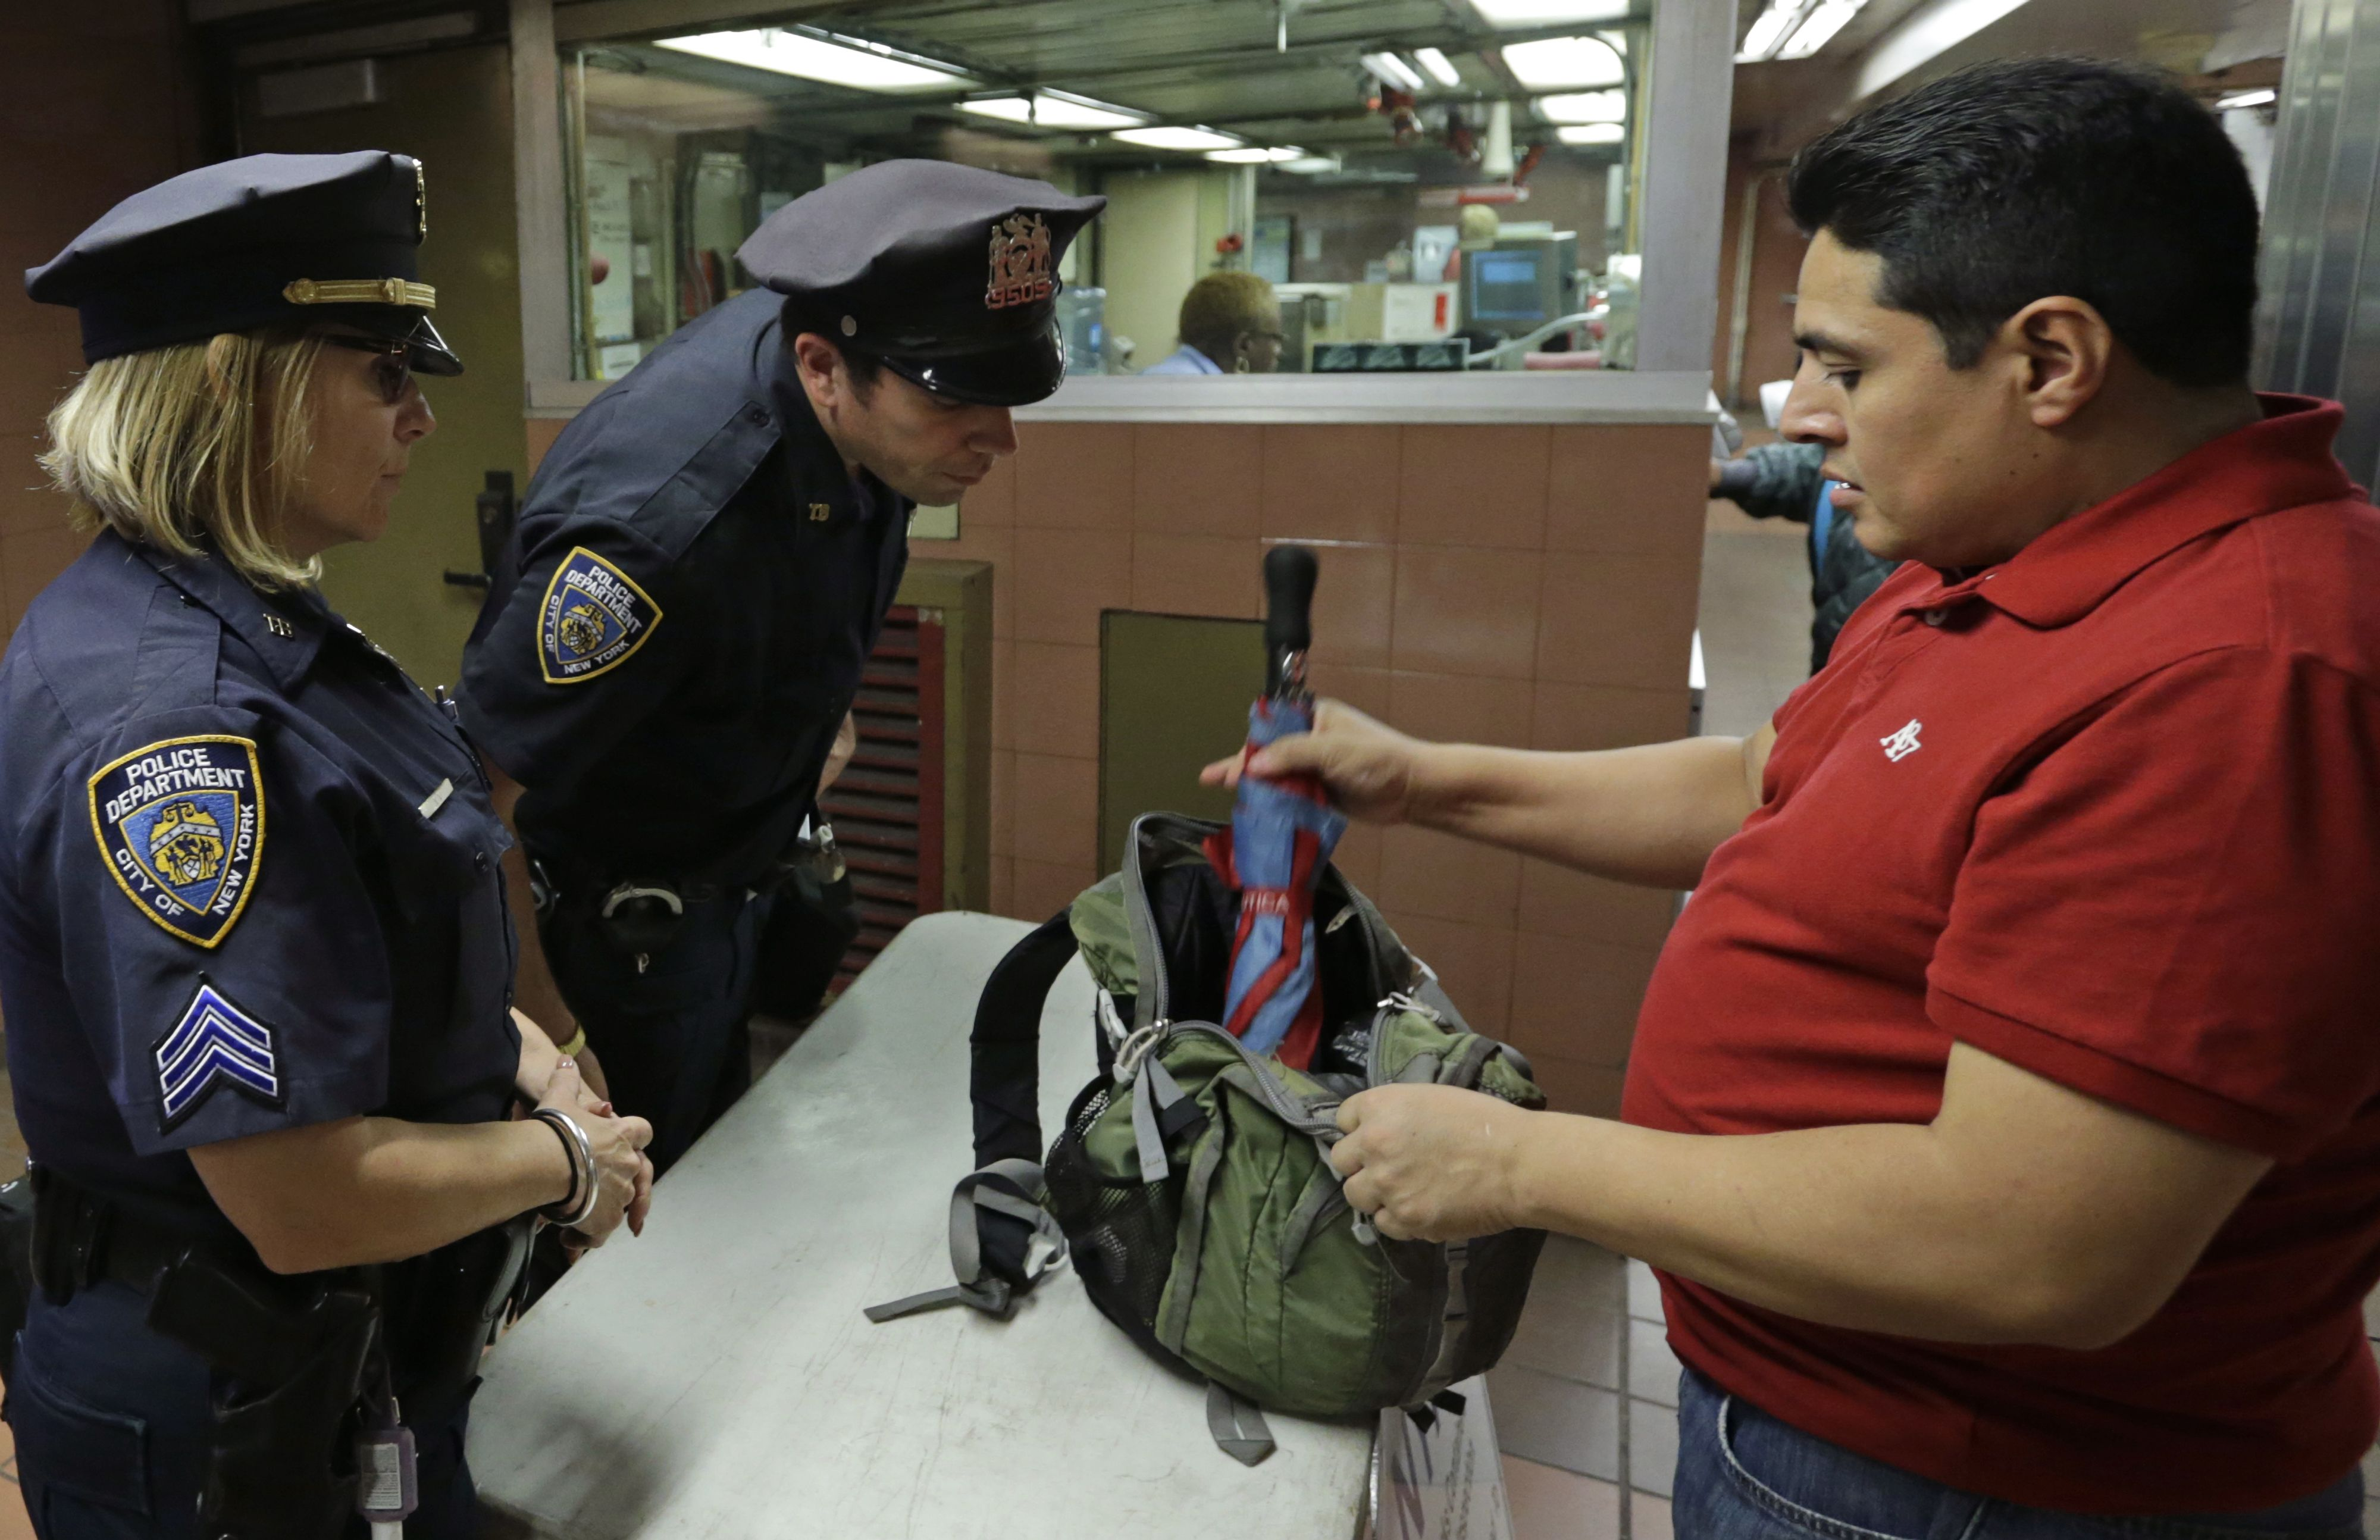 A commuter opens his brief case for police officers to examine its contents